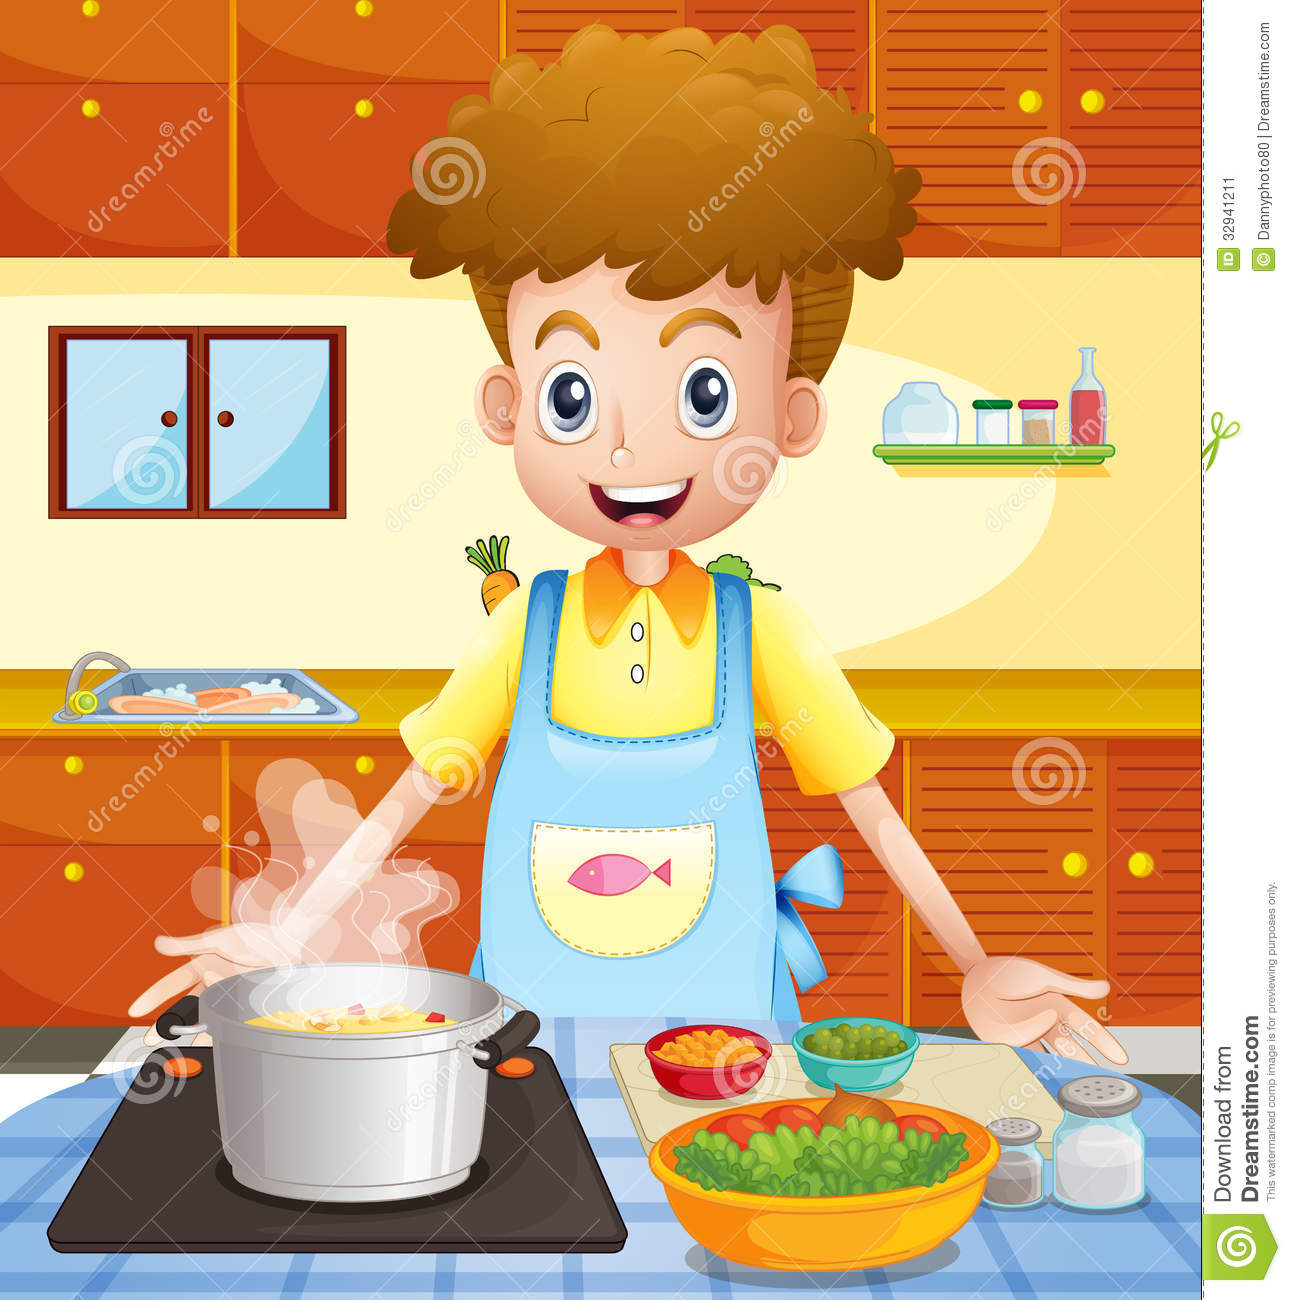 Selection of cartoons on cooking kitchens food and eating - Cooking Illustration Kitchen